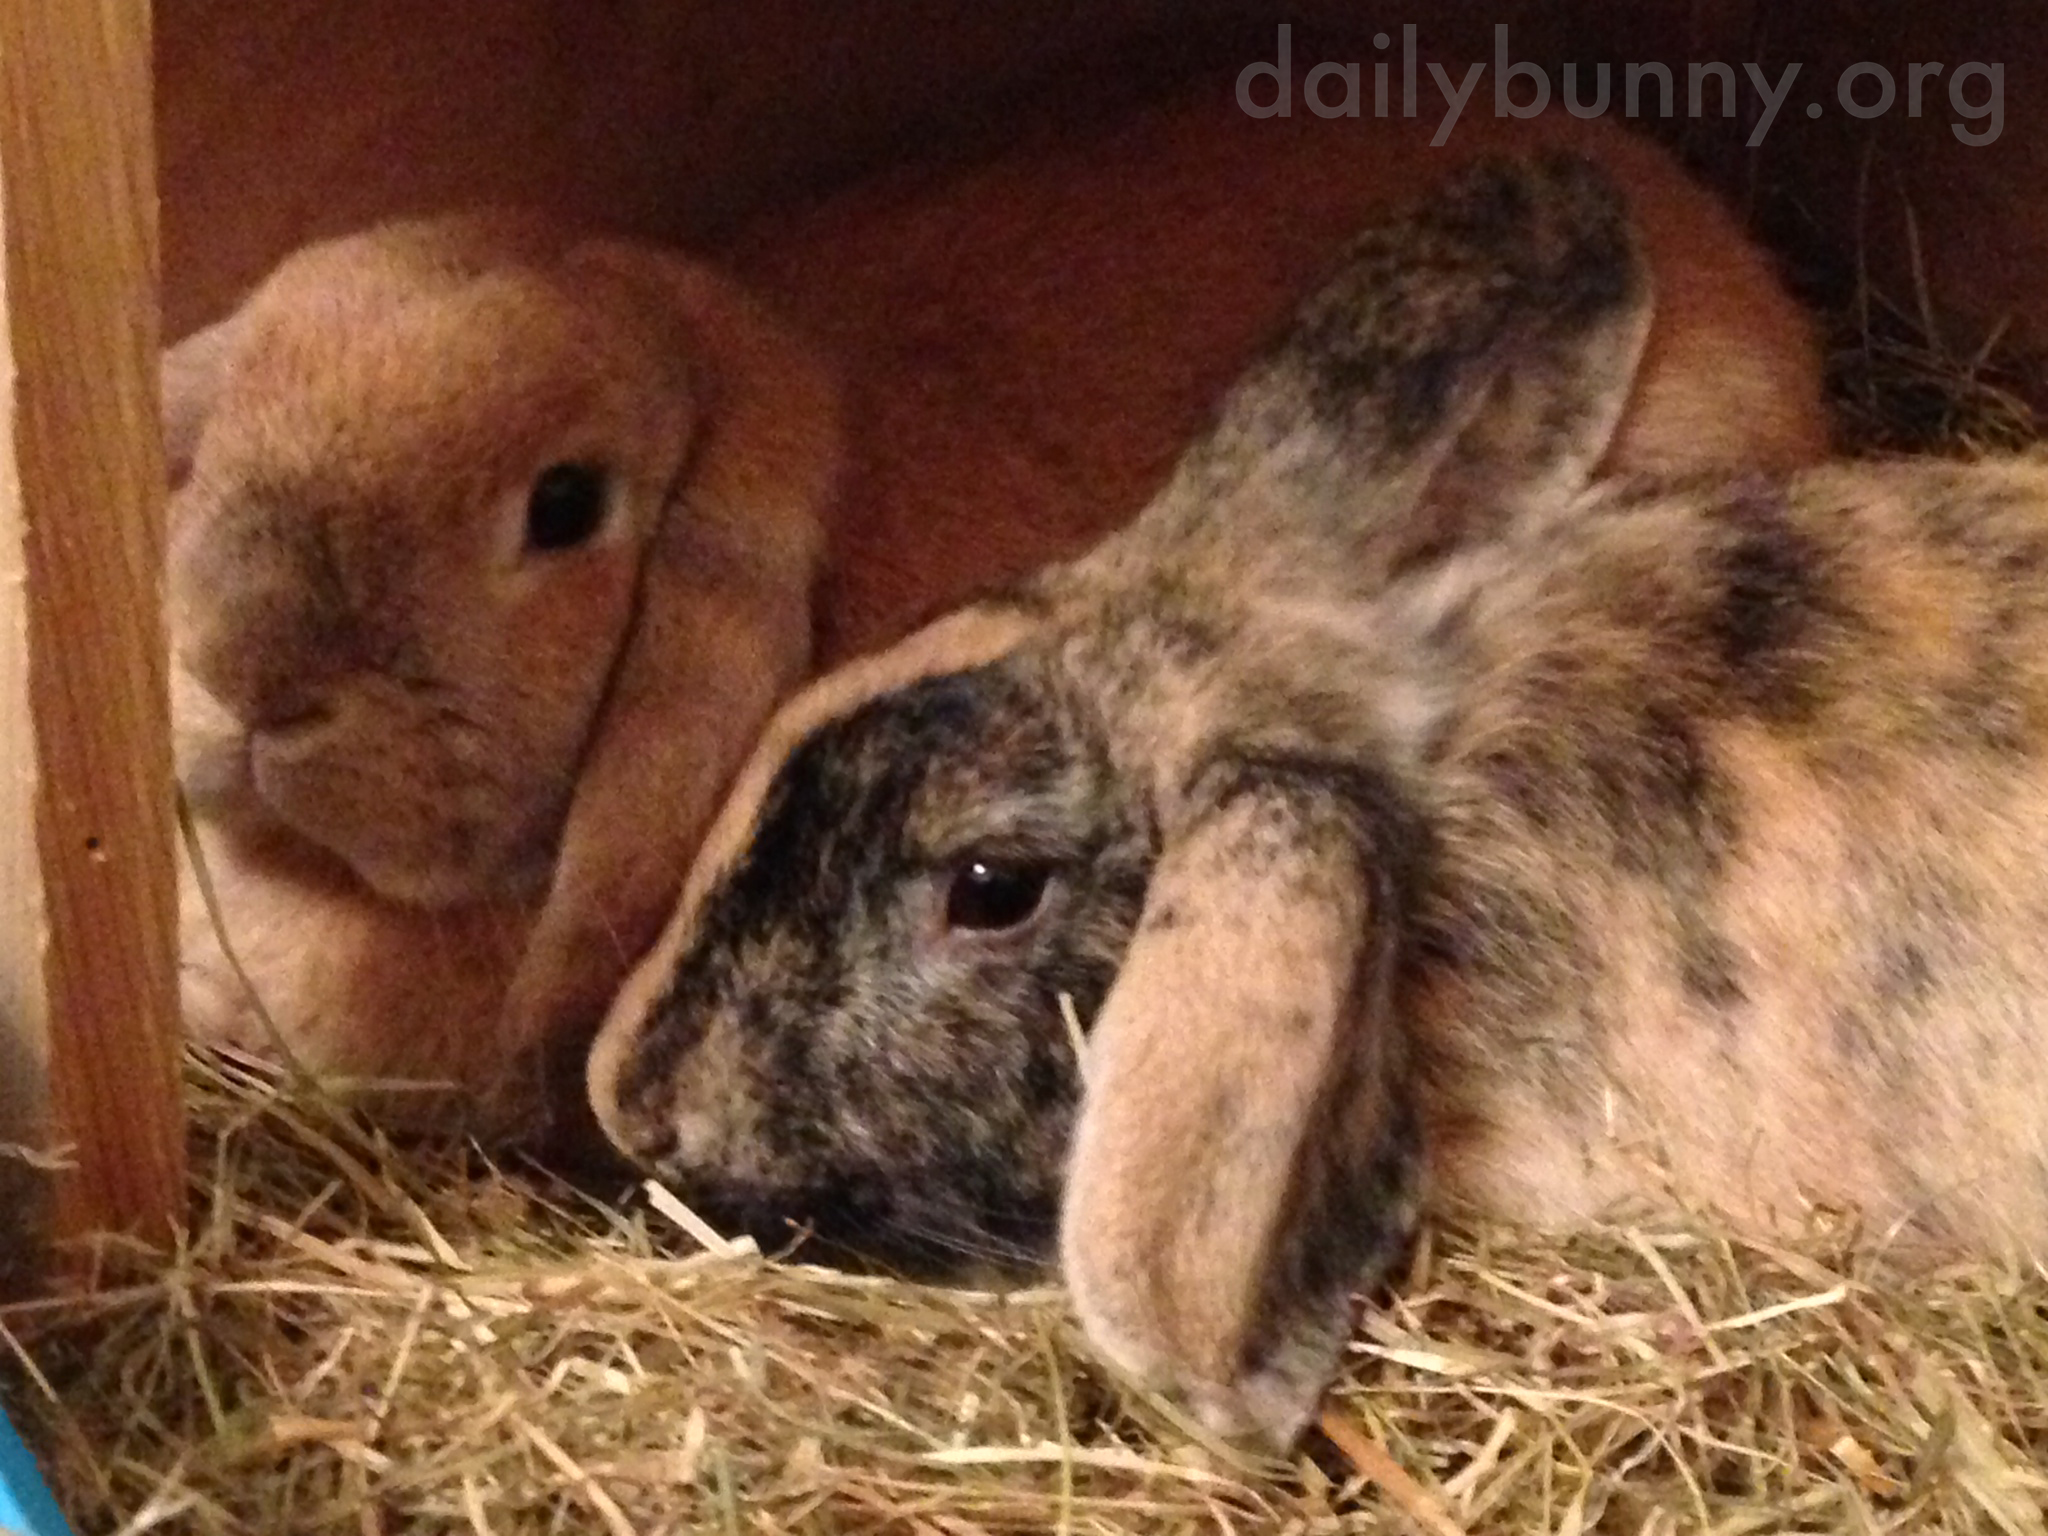 Bunnies Quietly, Peacefully Lie Together